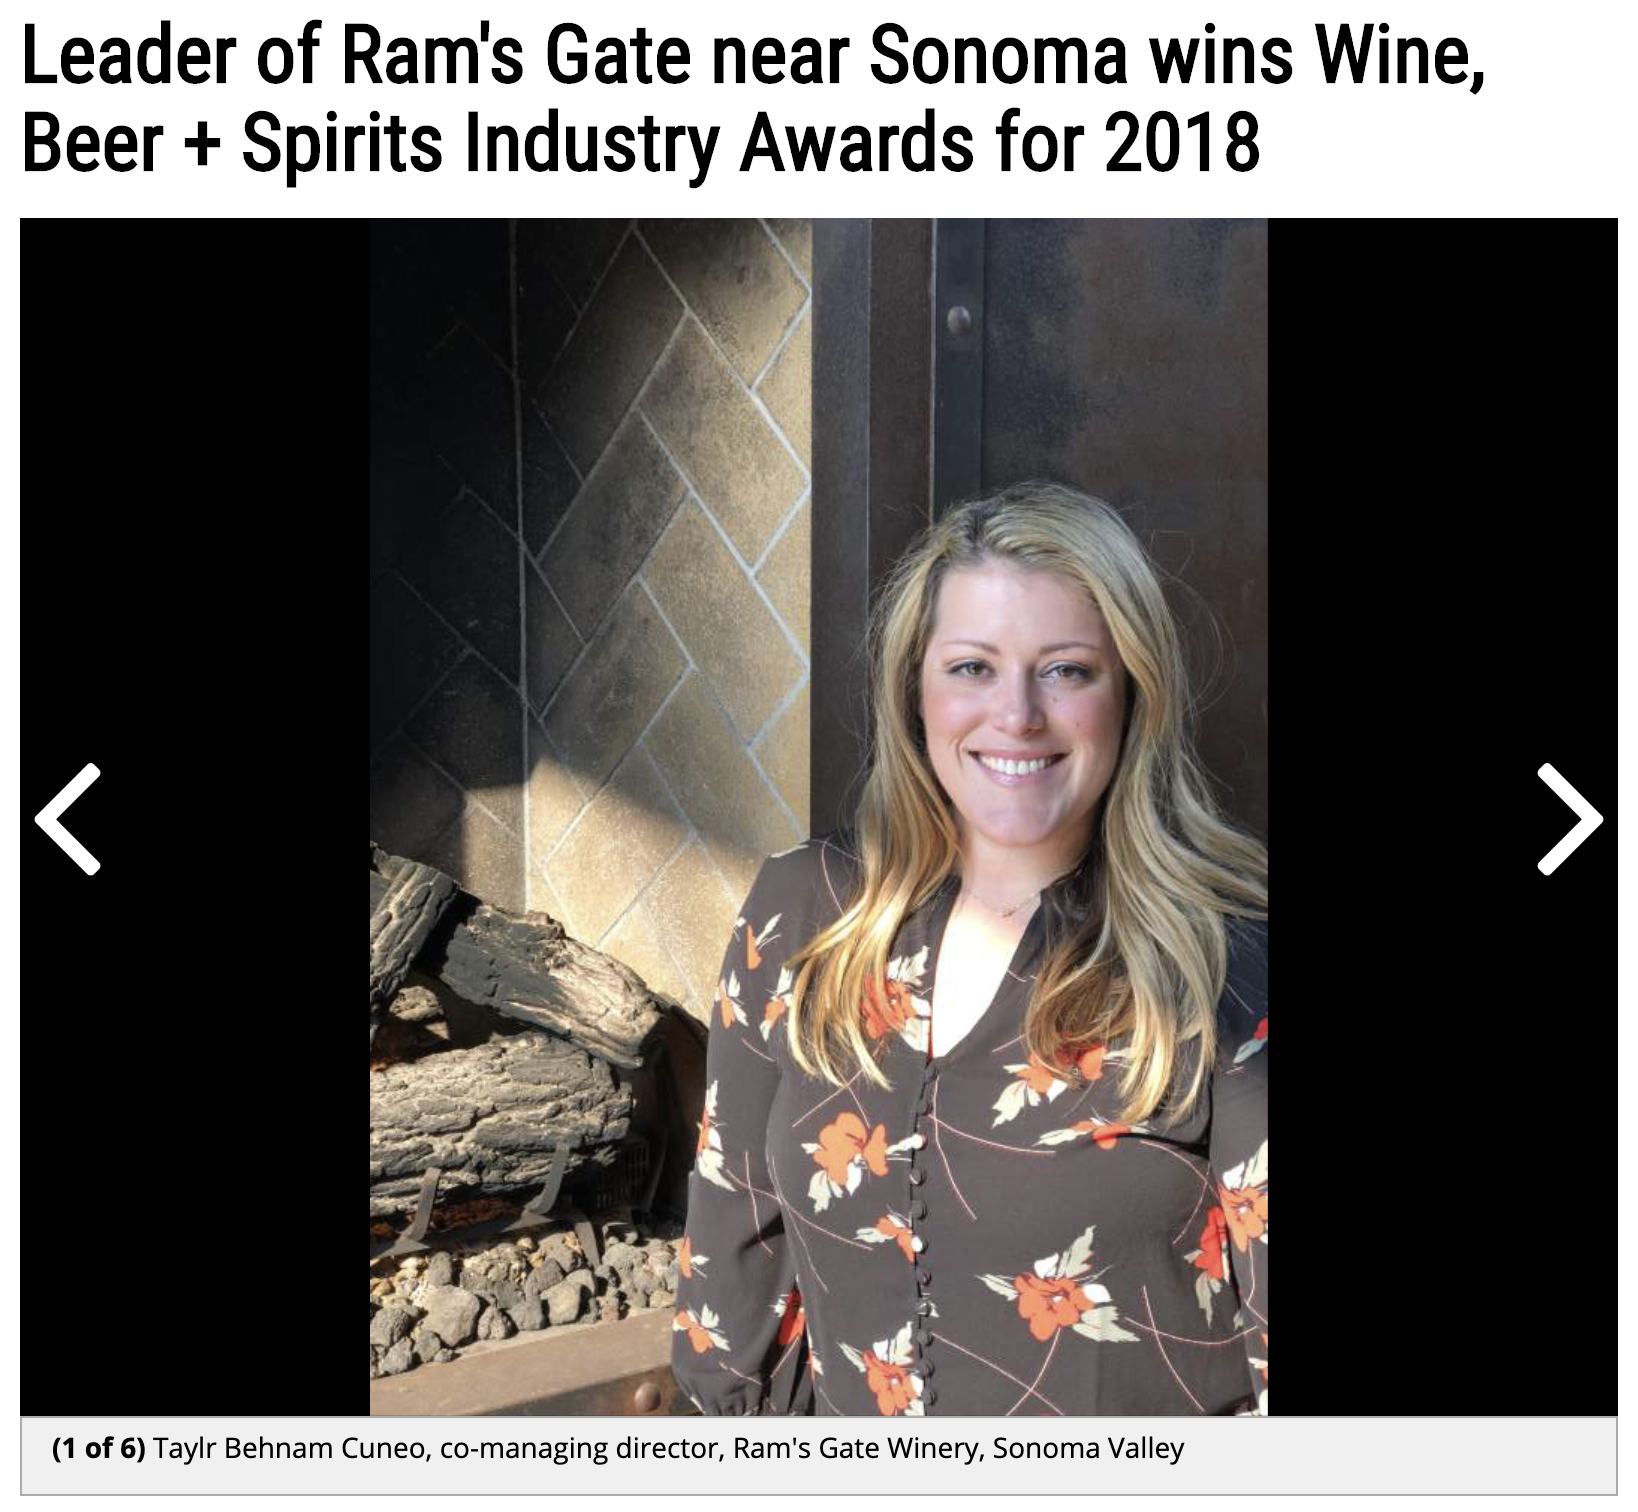 Beer & Spirits Award: Taylr Behnam Cuneo - North Bay Business Journal chose Taylr as Winery Director of the Year.